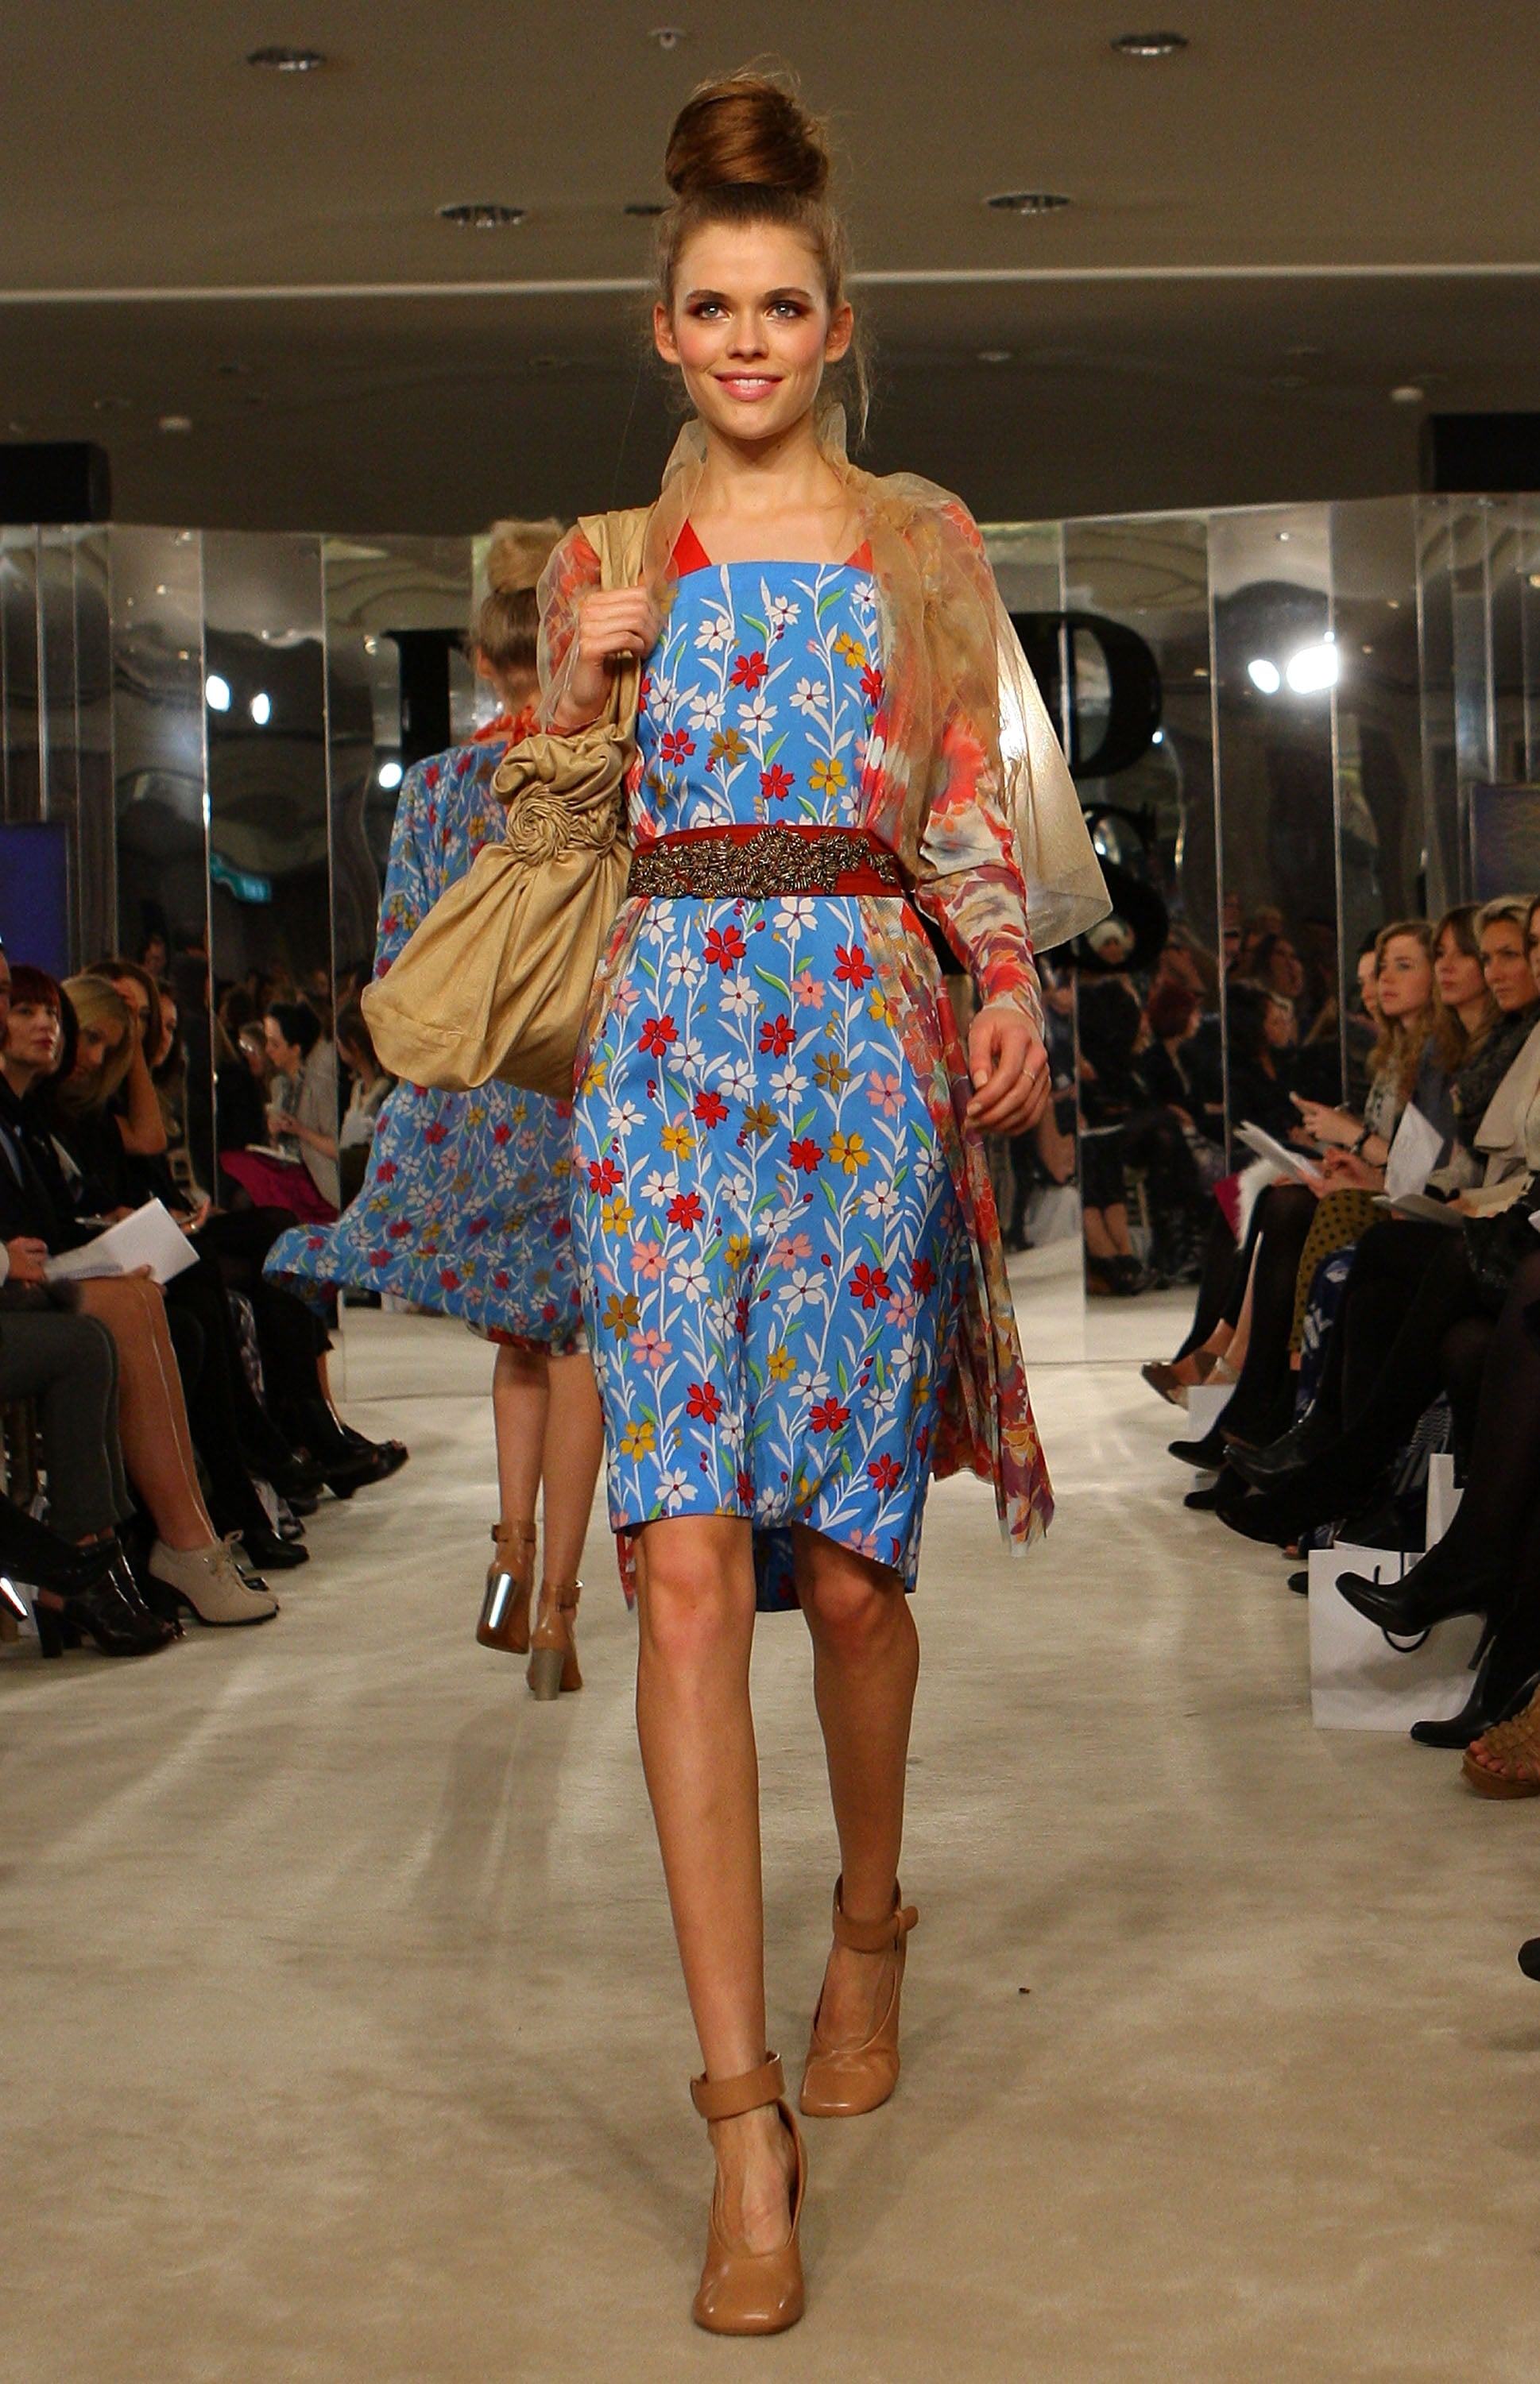 The hottest trends of the spring-summer 2010 season 09.02.2010 22